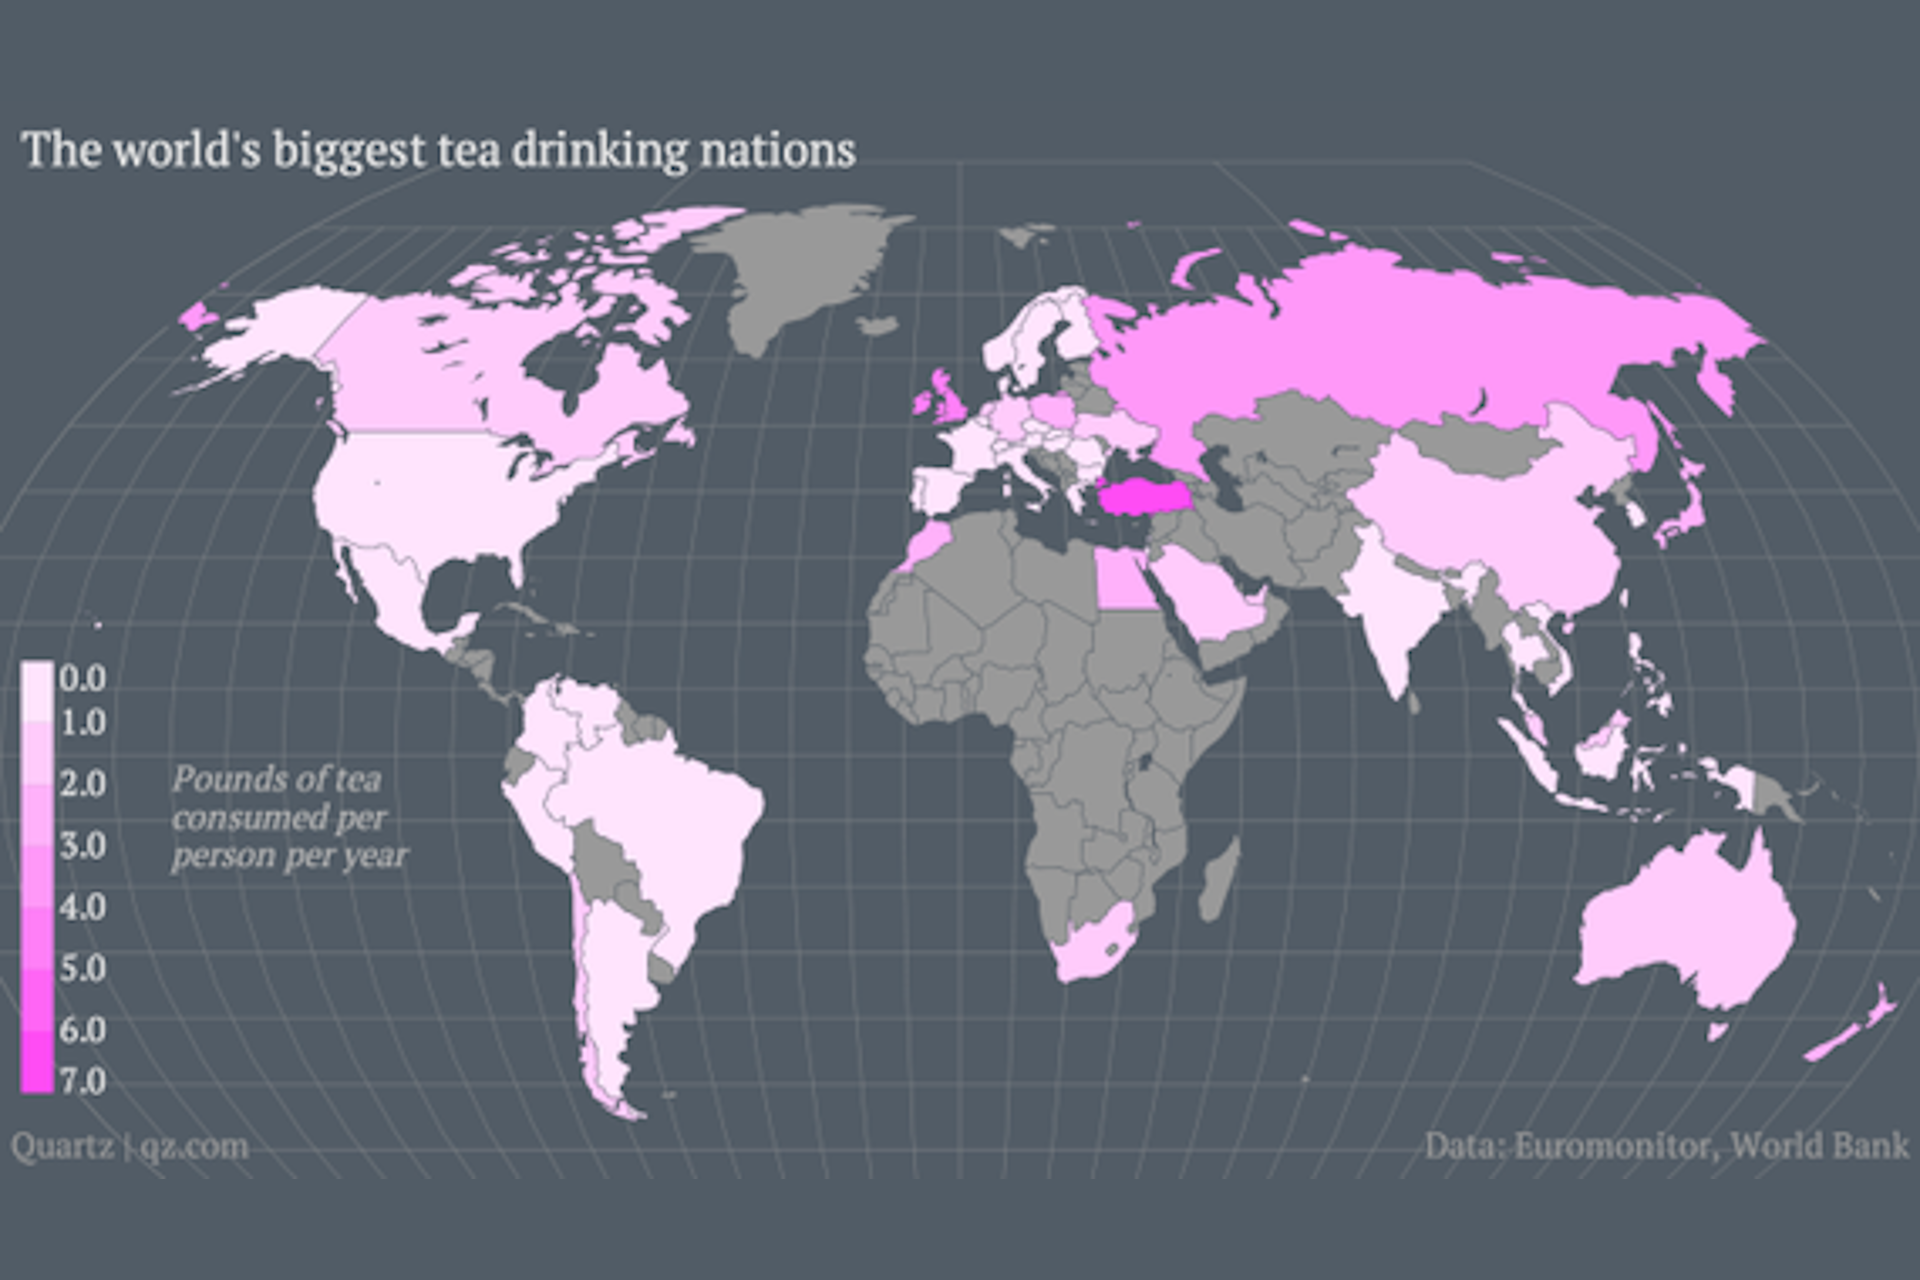 Countries that drink the most tea